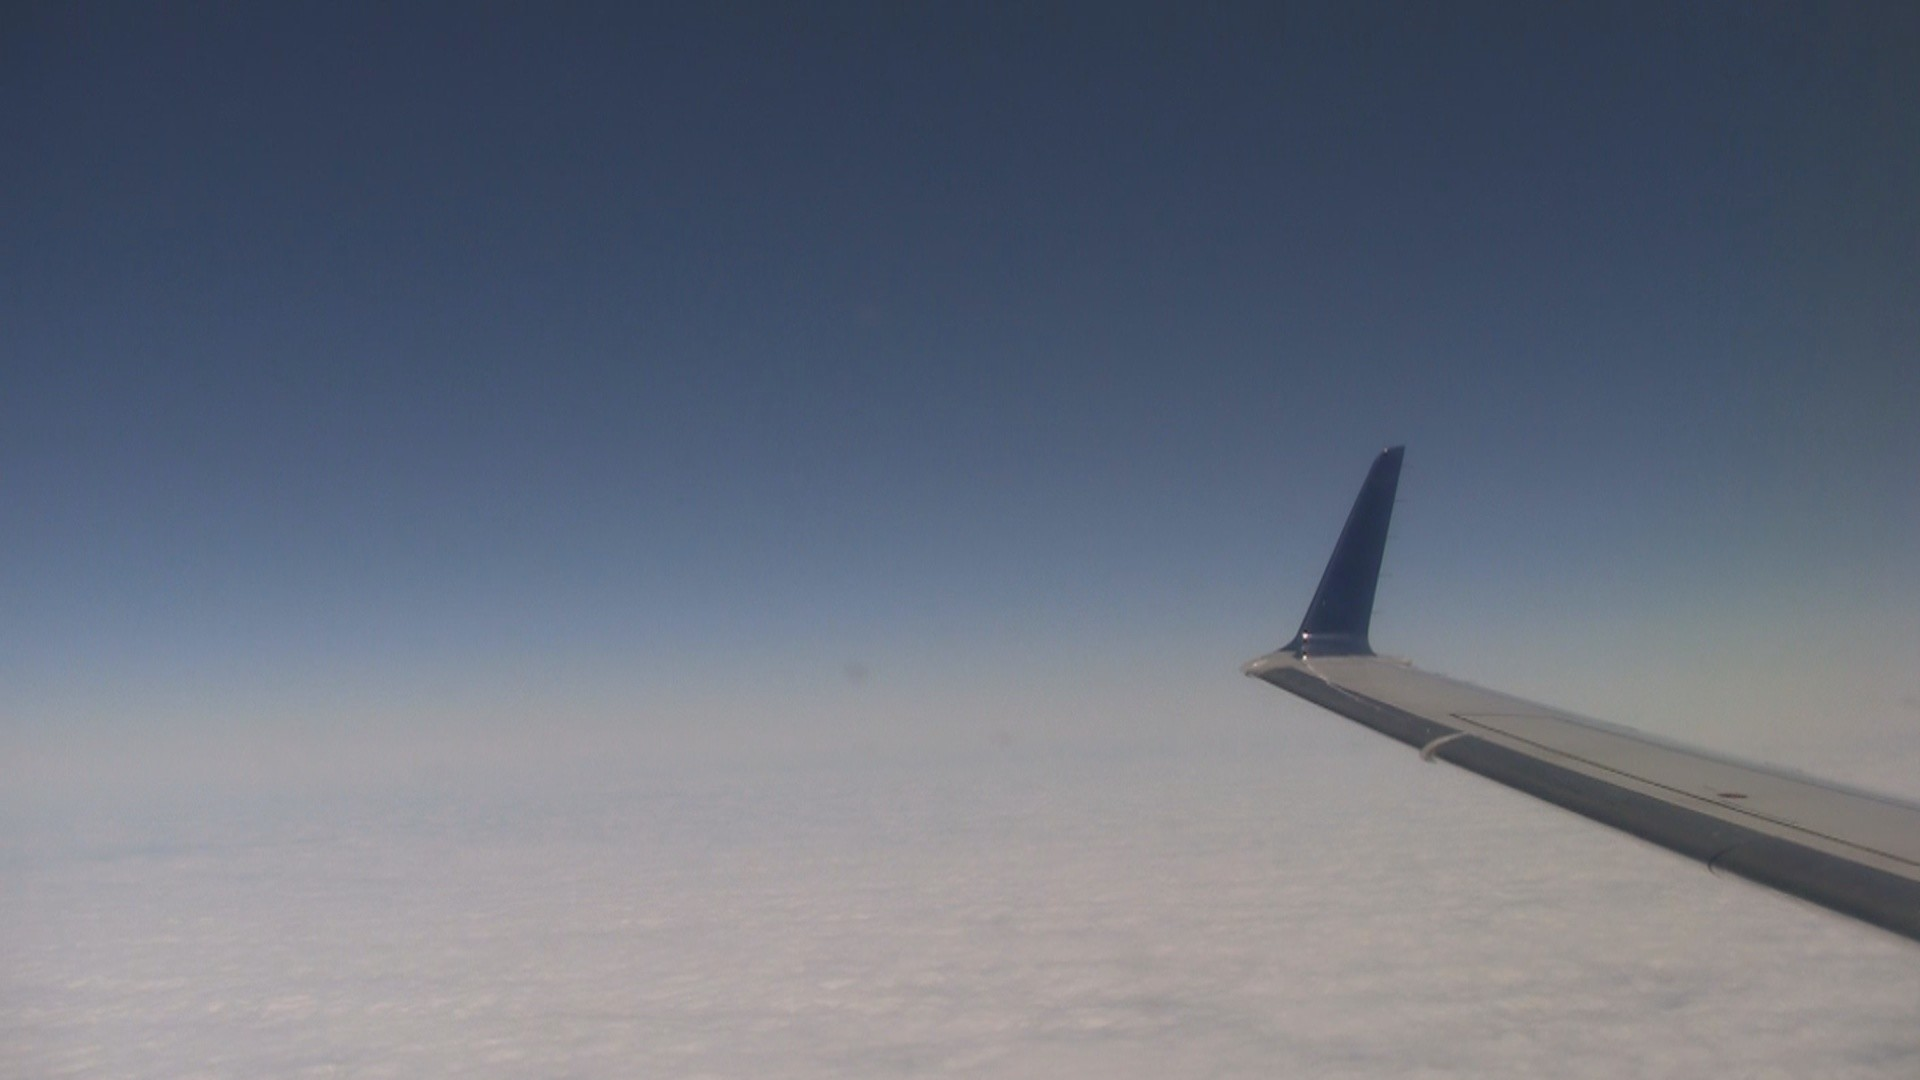 Wing of Delta Connection E175